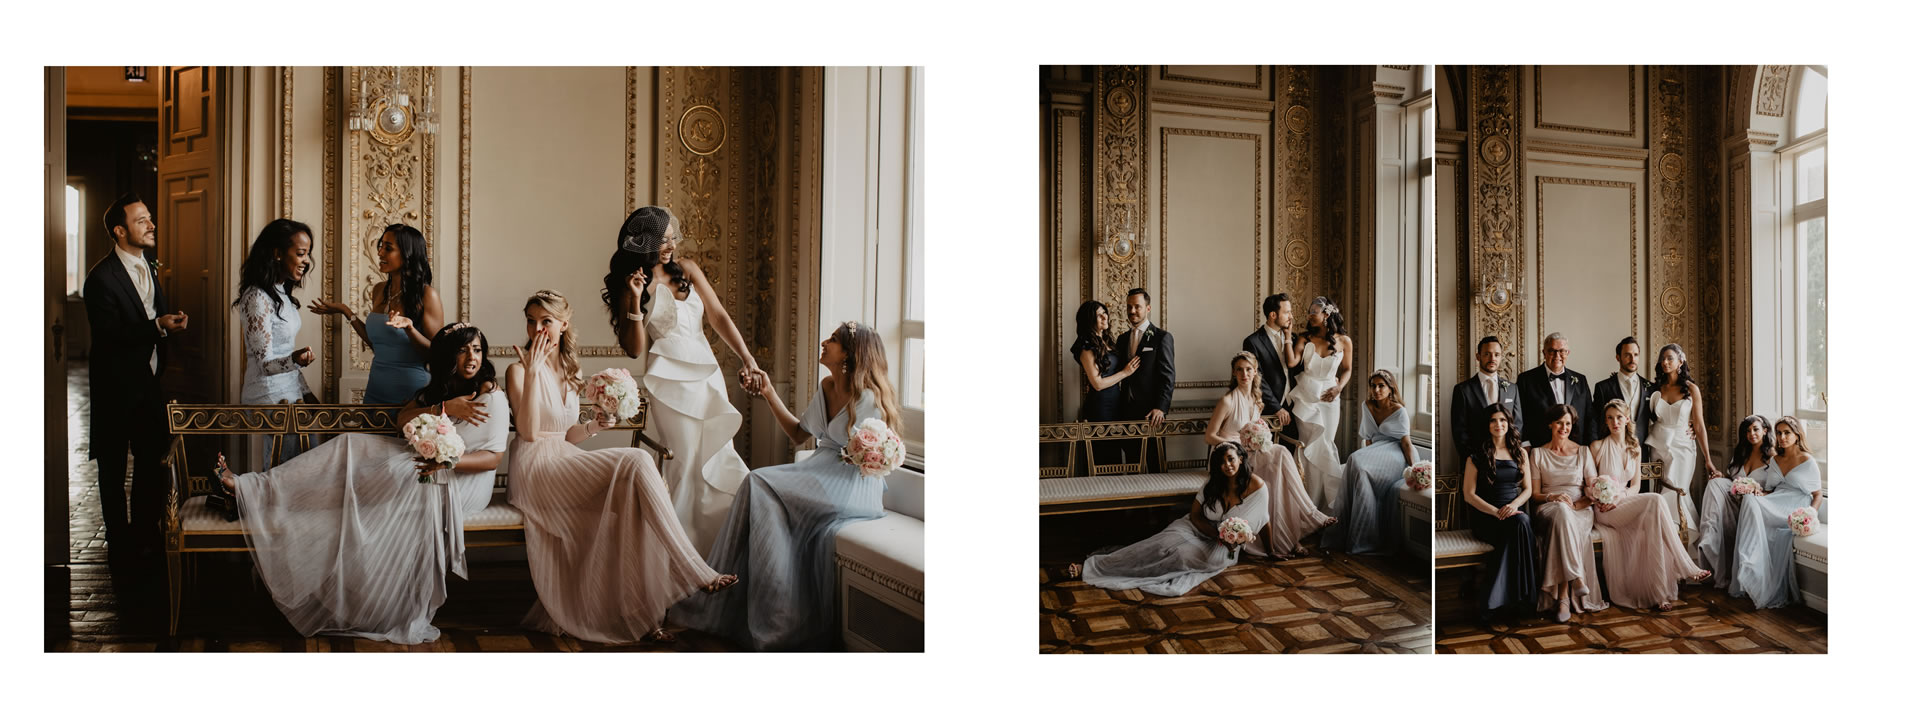 A Love story … from Rome to Harpers' Bazaar - 31 :: A Love story… from Rome to Harper's Bazaar :: Luxury wedding photography - 30 :: A Love story … from Rome to Harpers' Bazaar - 31